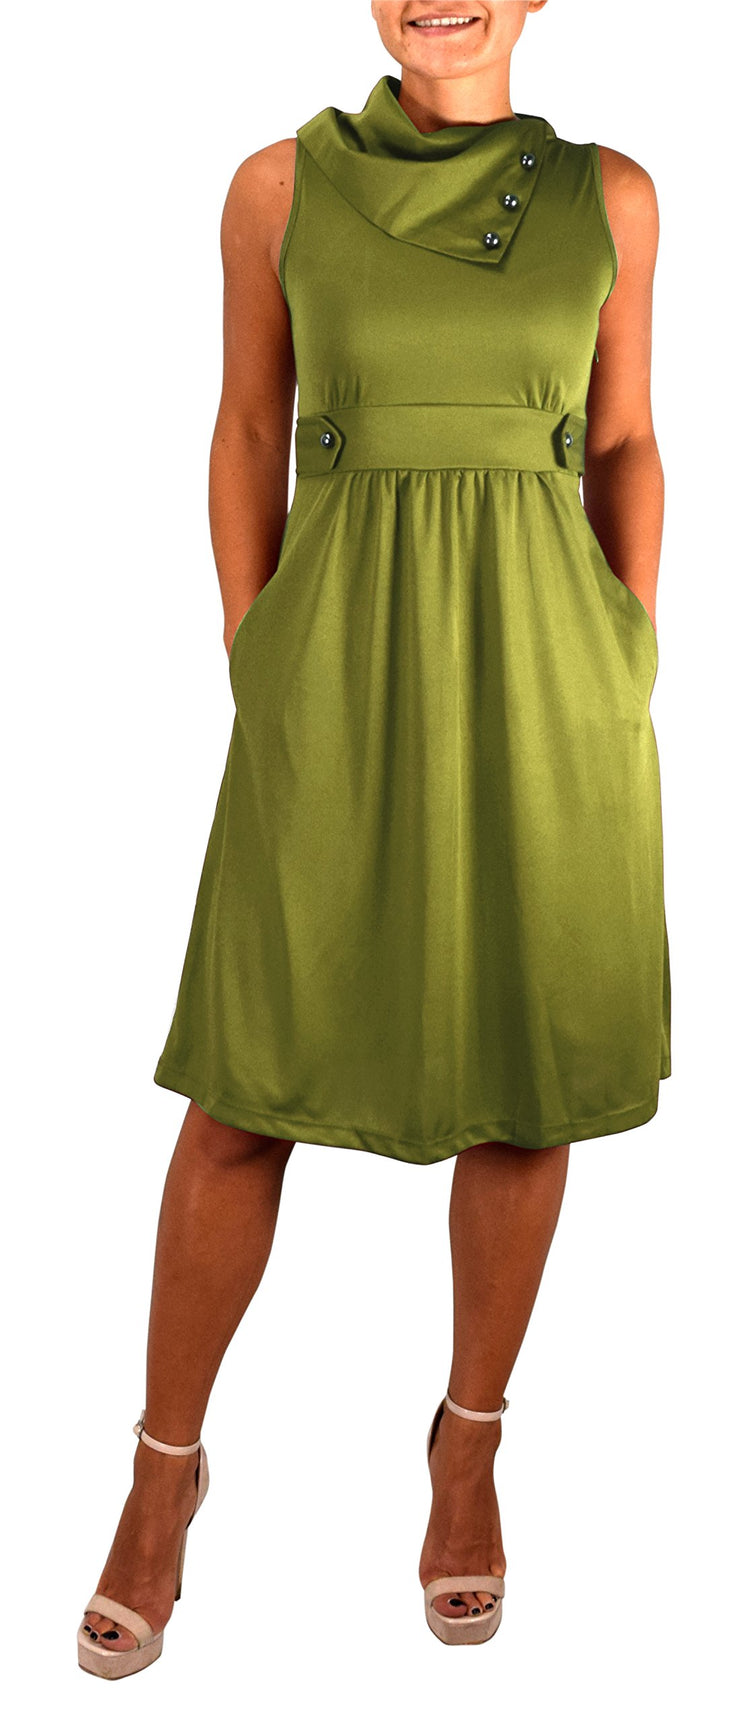 B0922-Foldover-Collar-Dress-Green-XL-OS